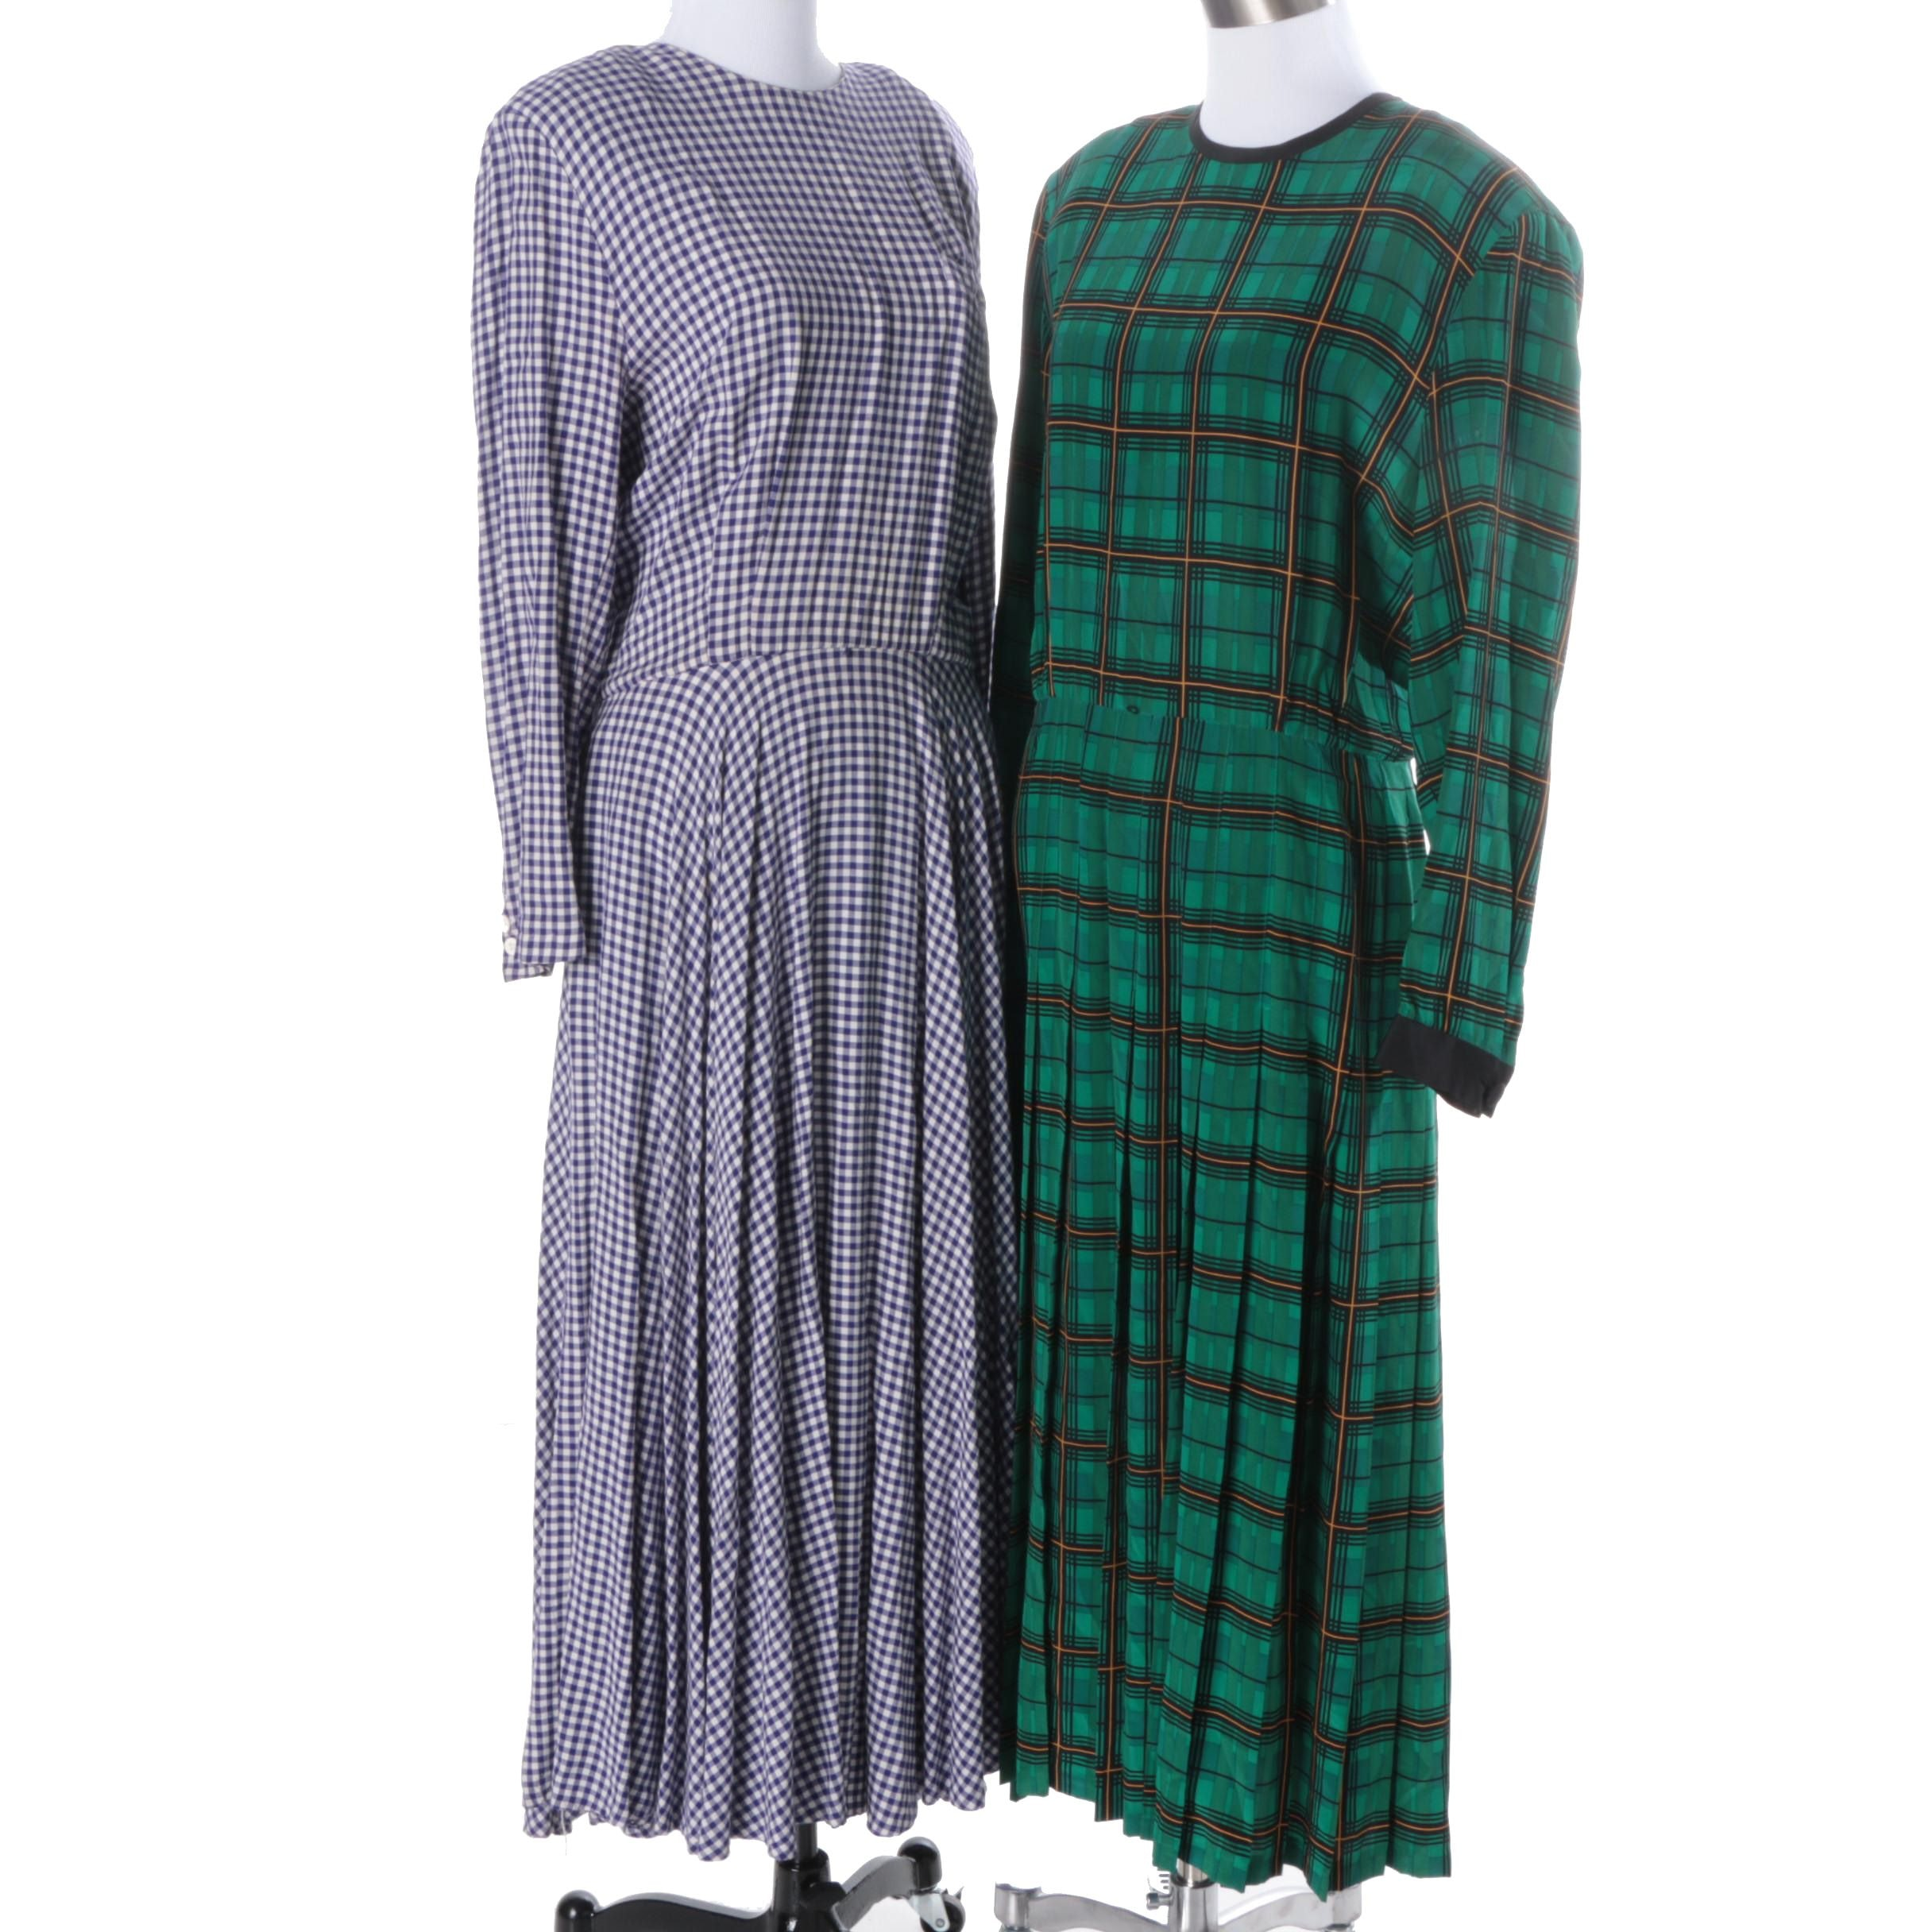 Two Dresses Including Liz Claiborne